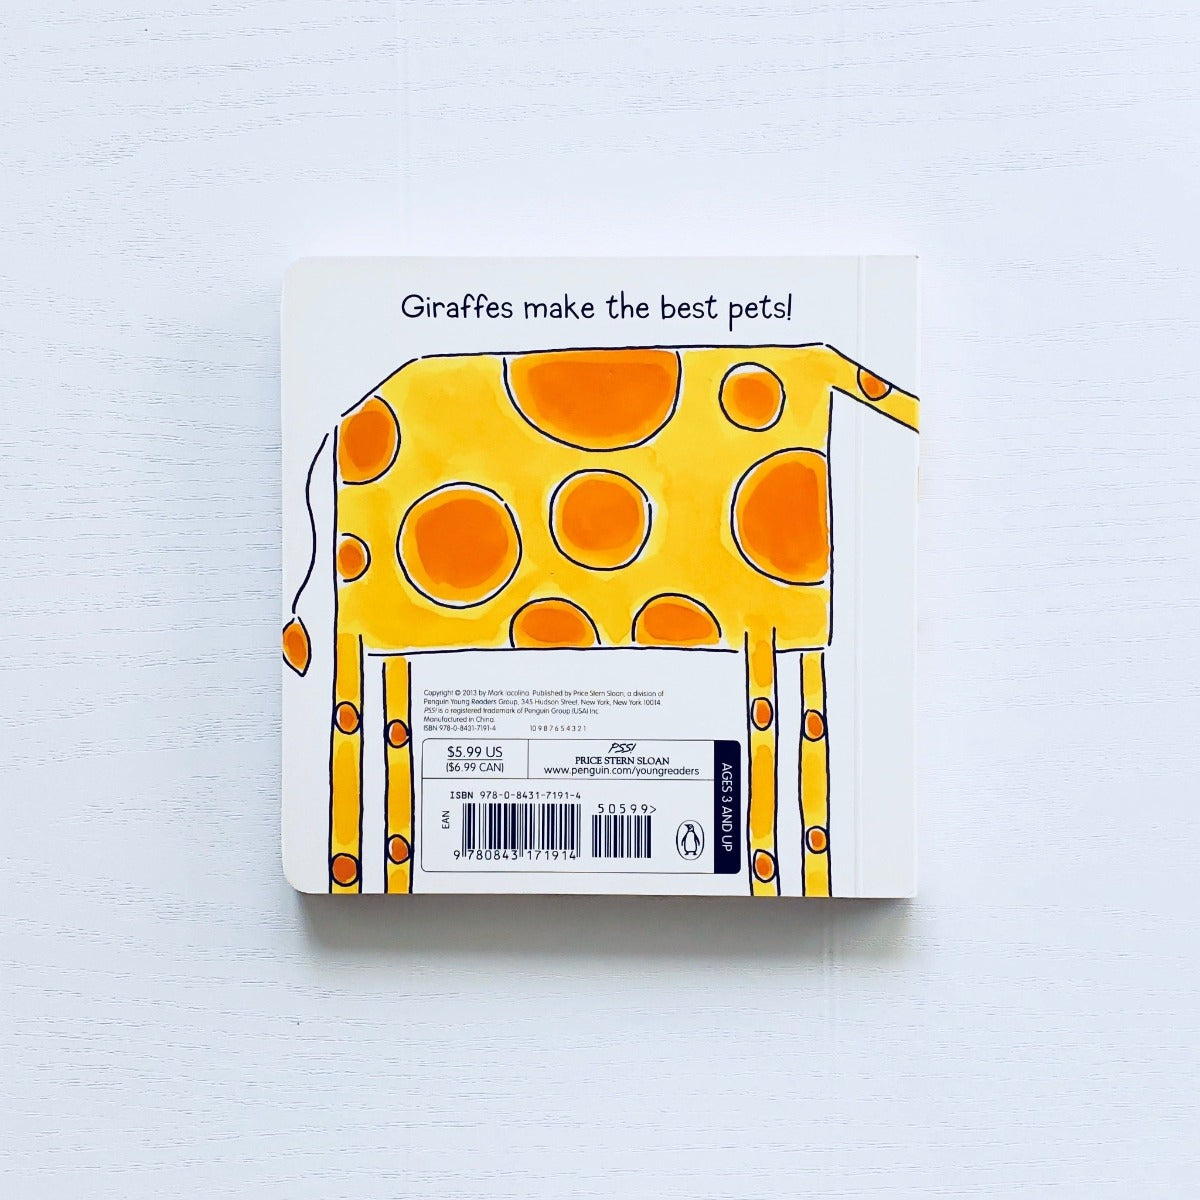 My Pet Giraffe back cover